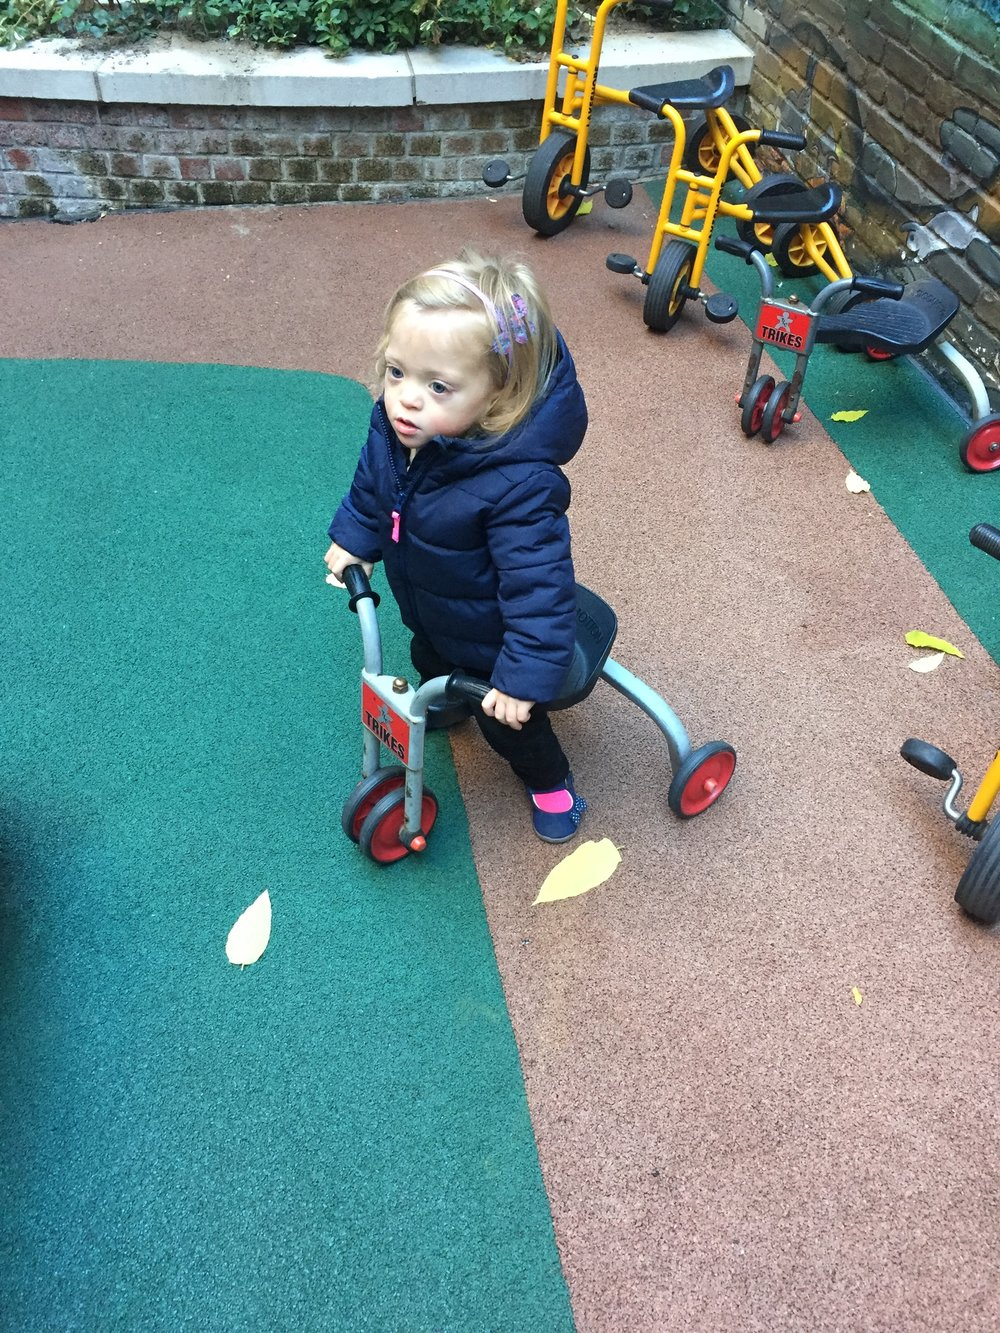 Playing on the Scooting Tricycle.